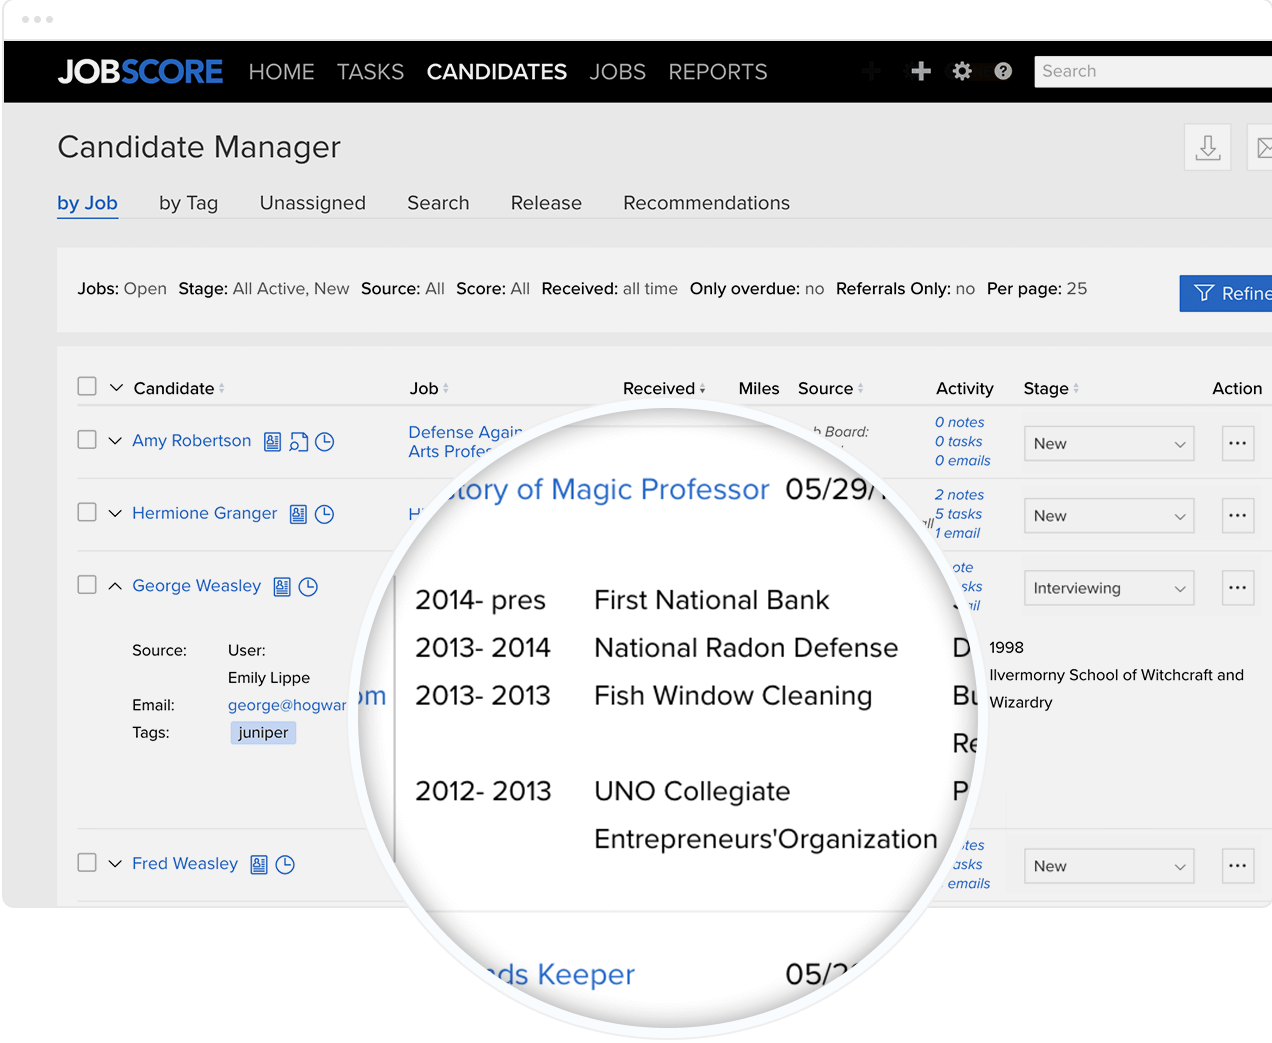 Magnified candidate resume overview using JobScore's Candidate Manager software.